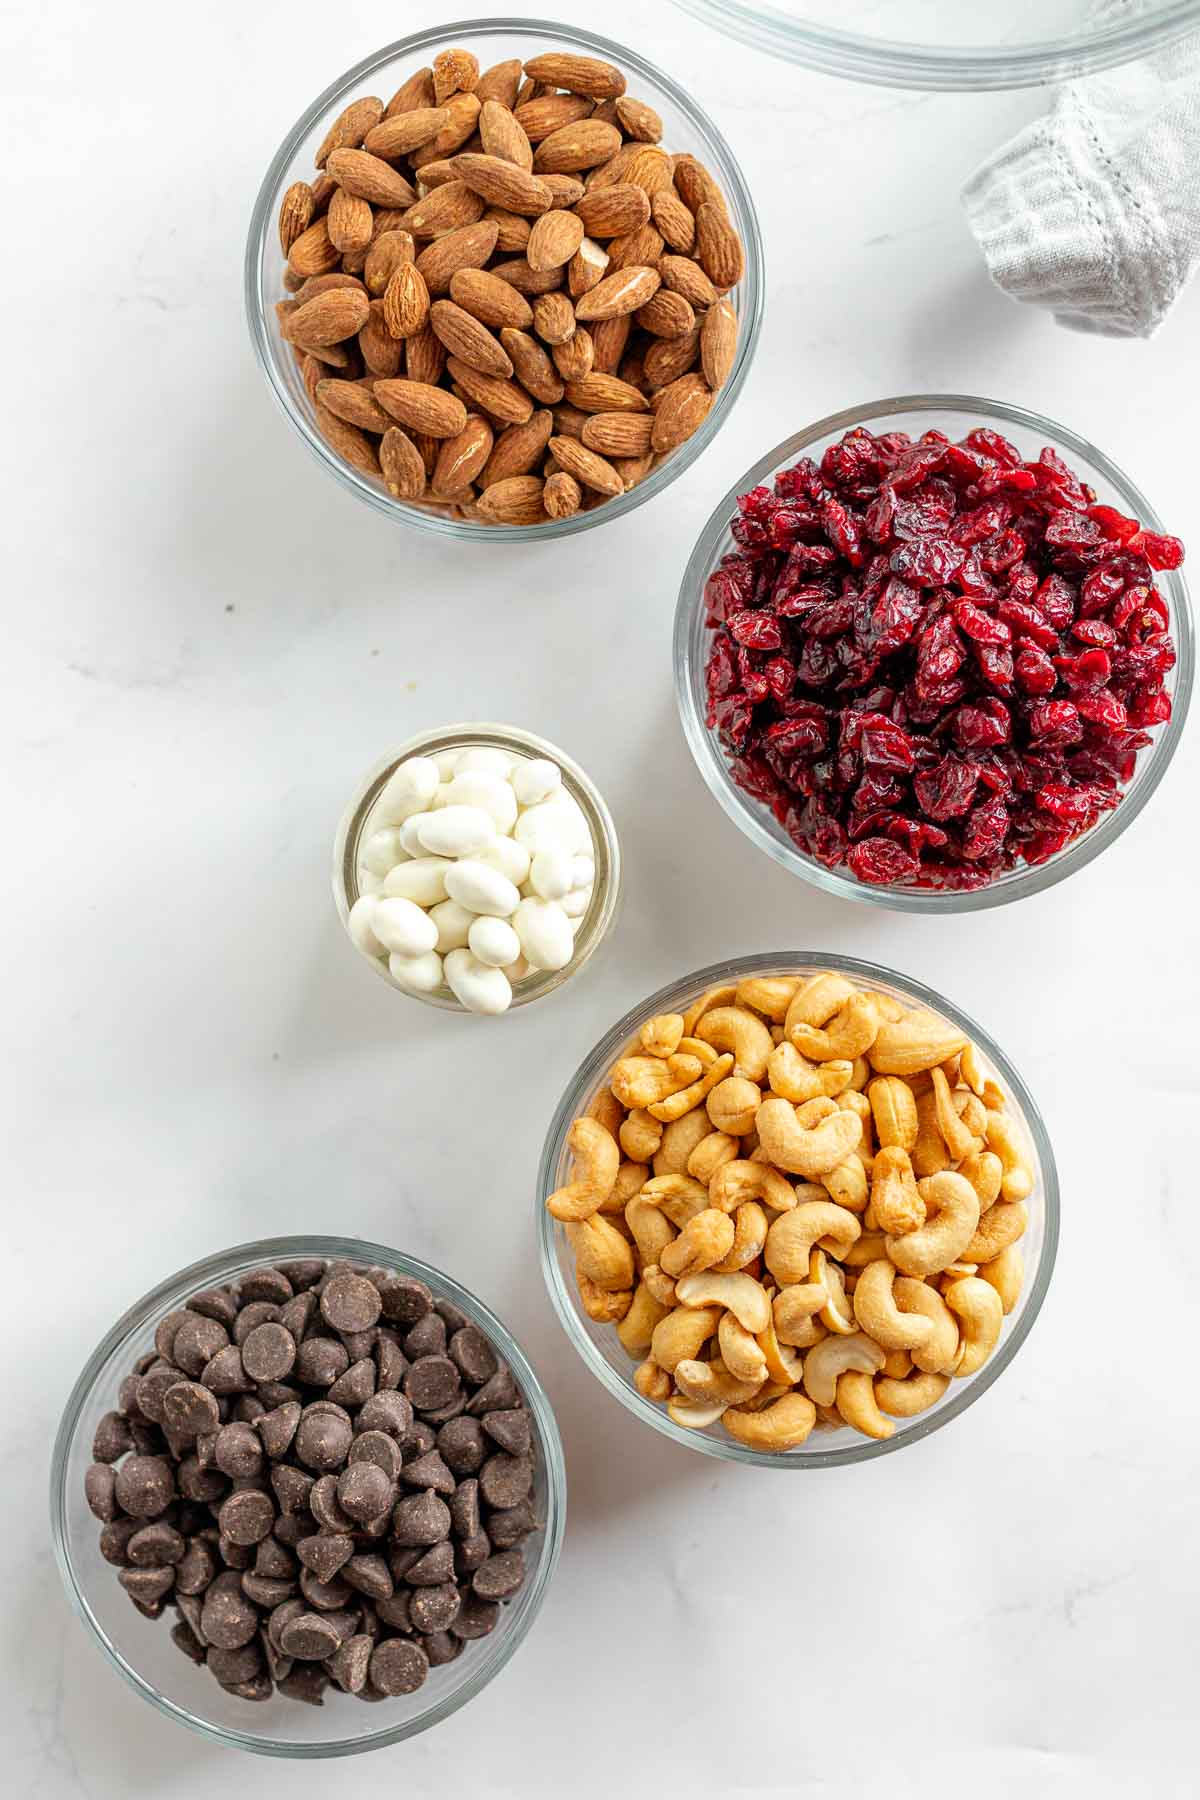 Cranberry Trail Mix ingredients in separate glass bowls